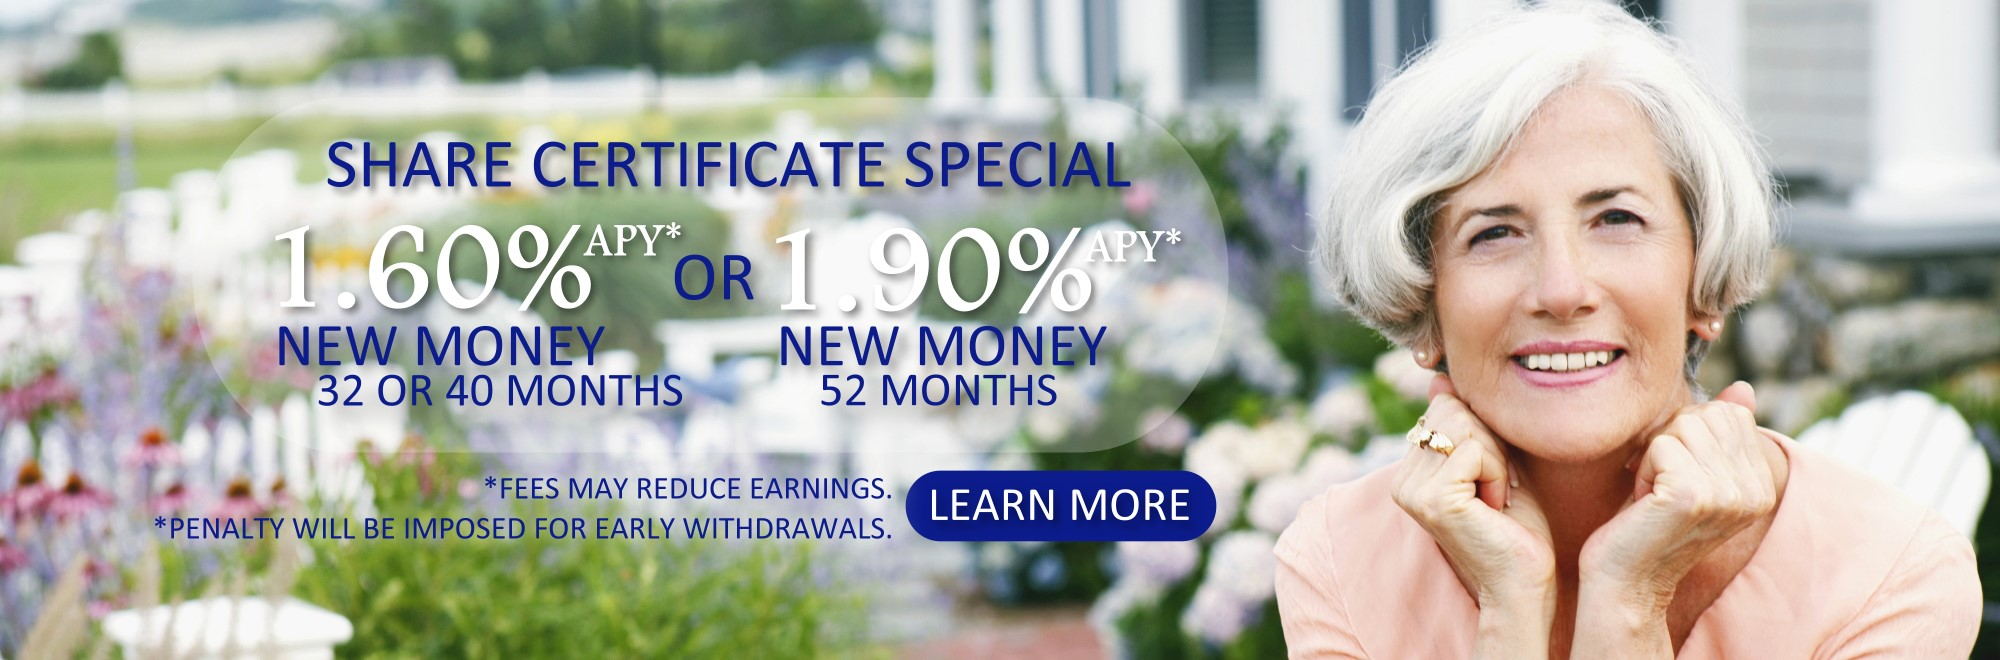 share certificate special image